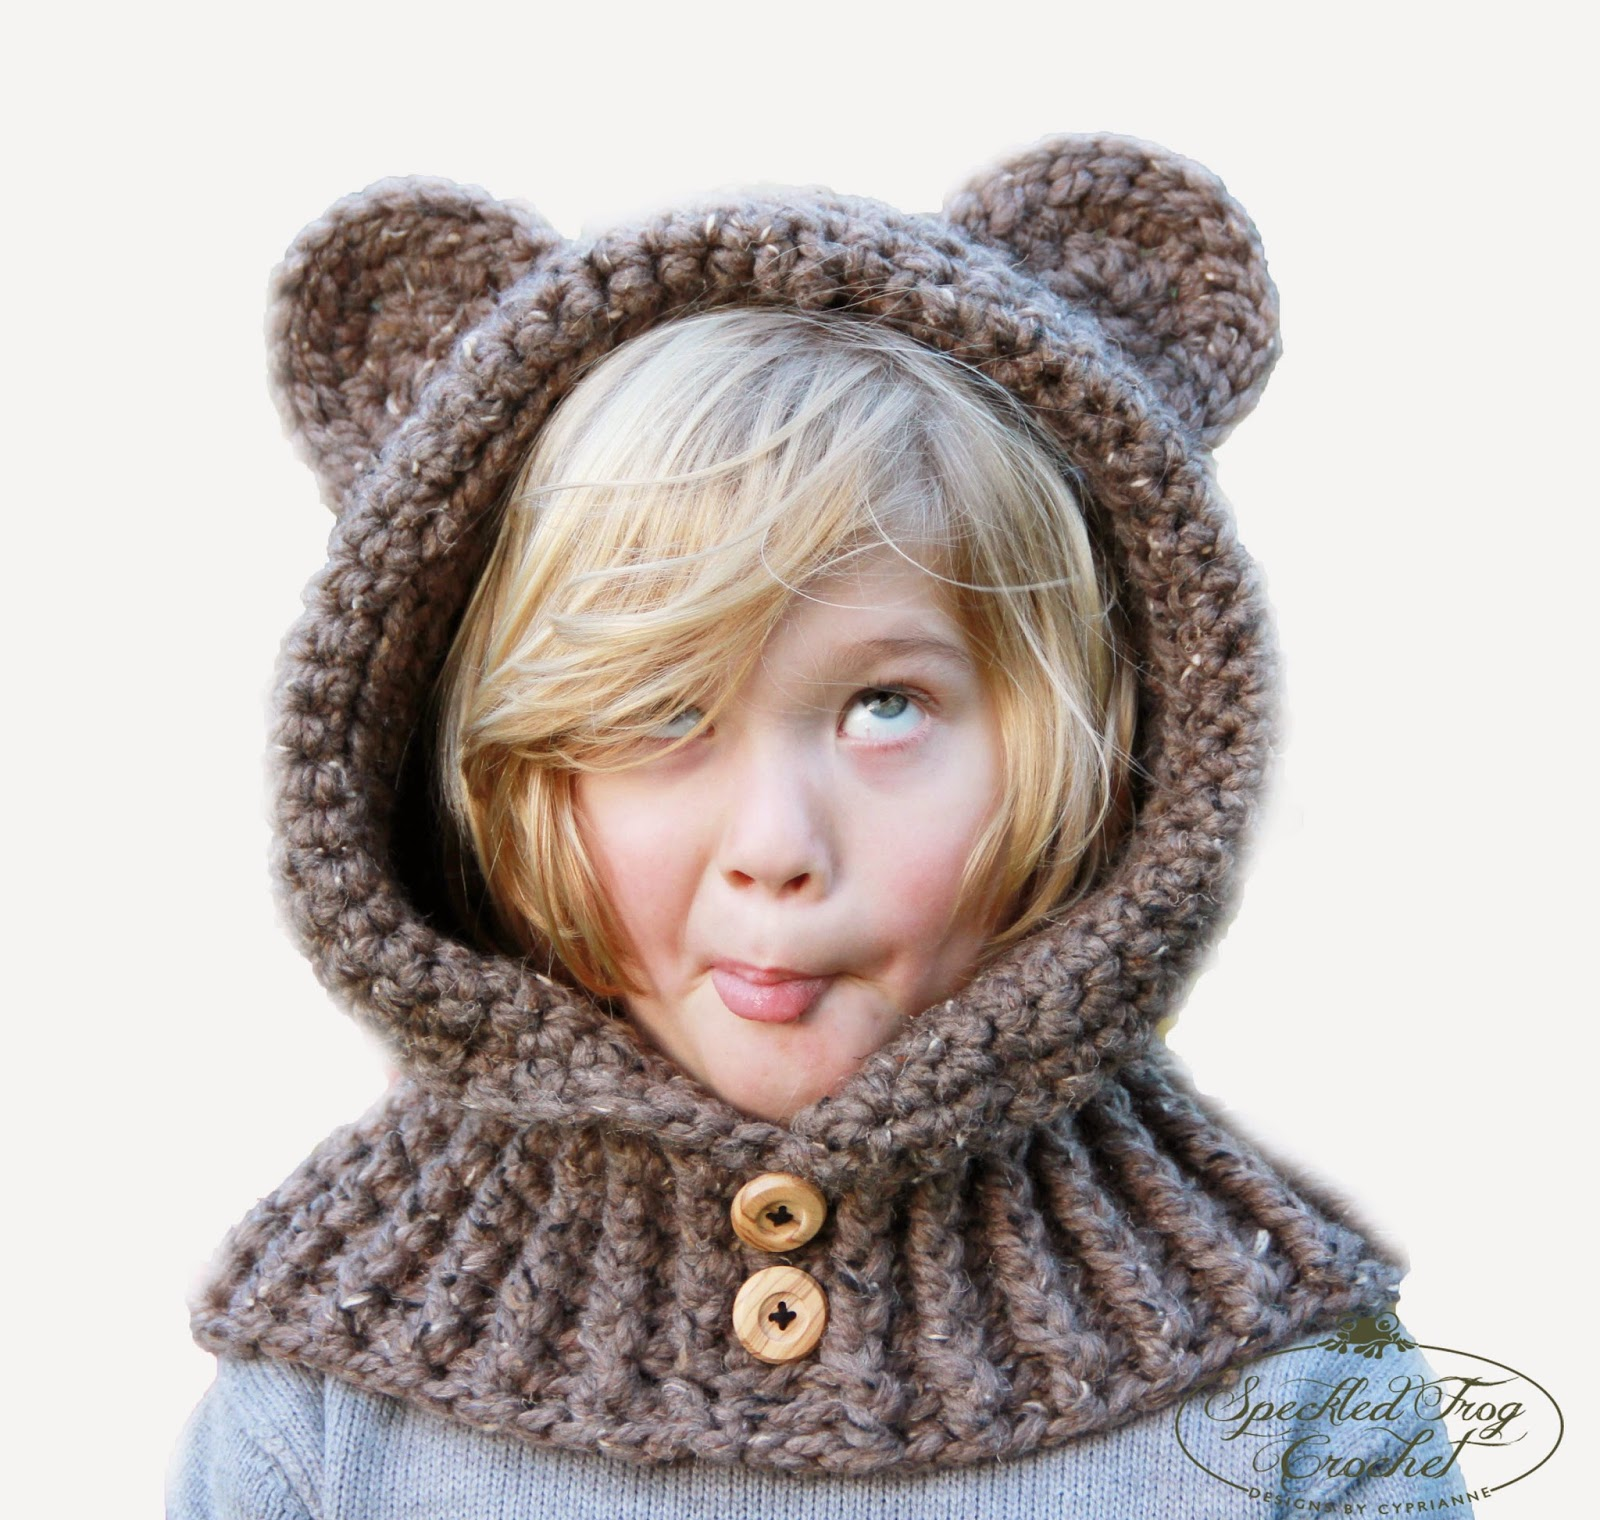 Free Cowl Pattern To Crochet : Pretty Darn Adorable Crochet: CROCHET HOODED BEAR COWL PATTERN